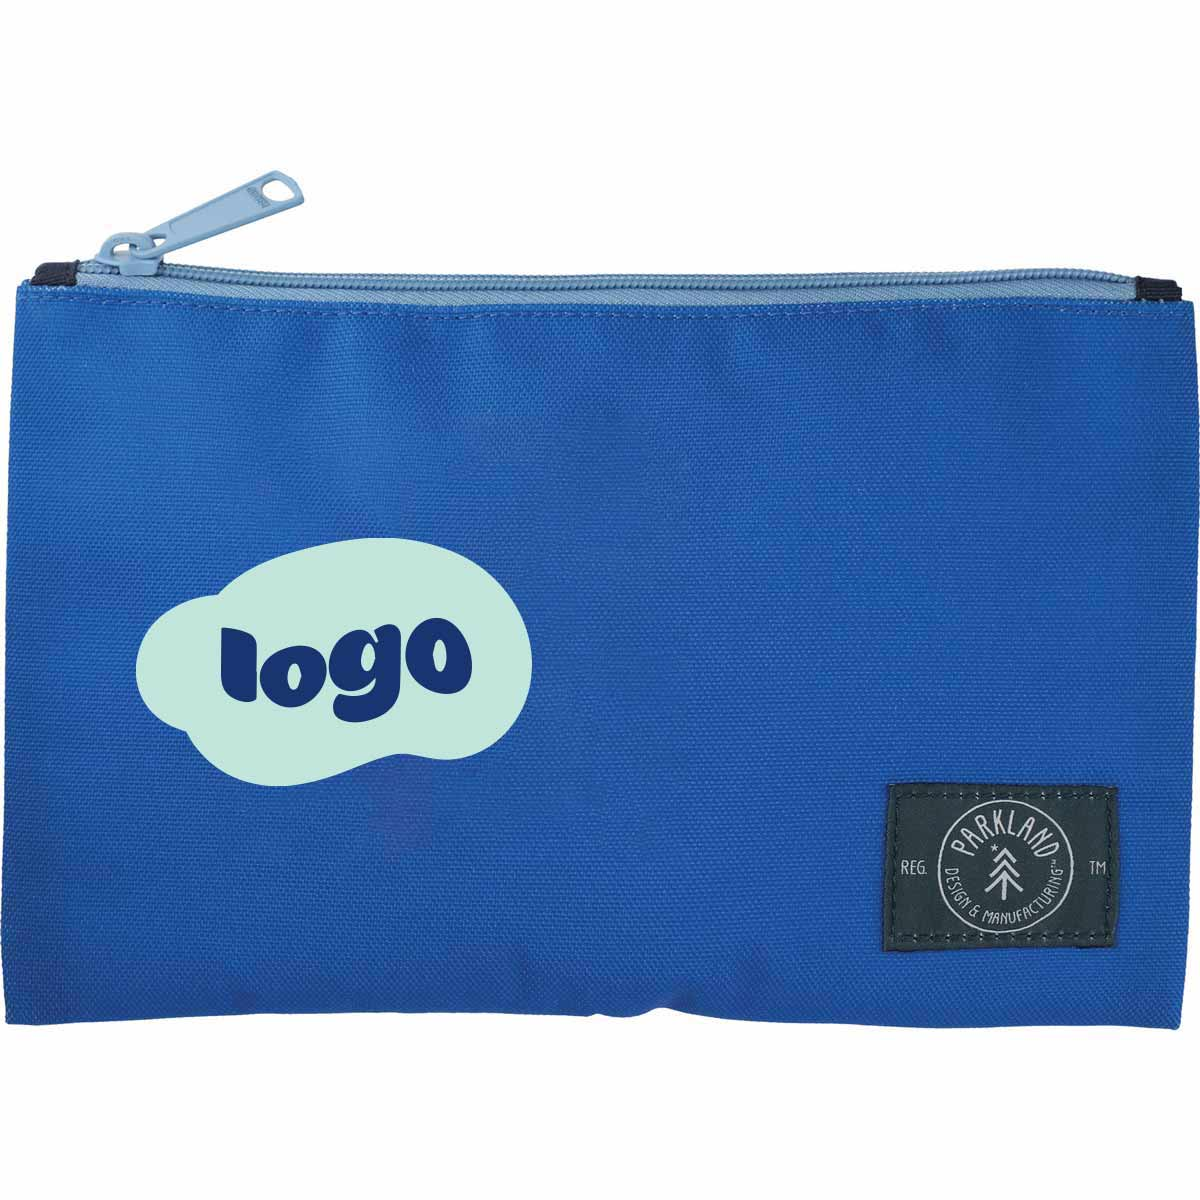 268149 fraction travel pouch two color heat transfer one location